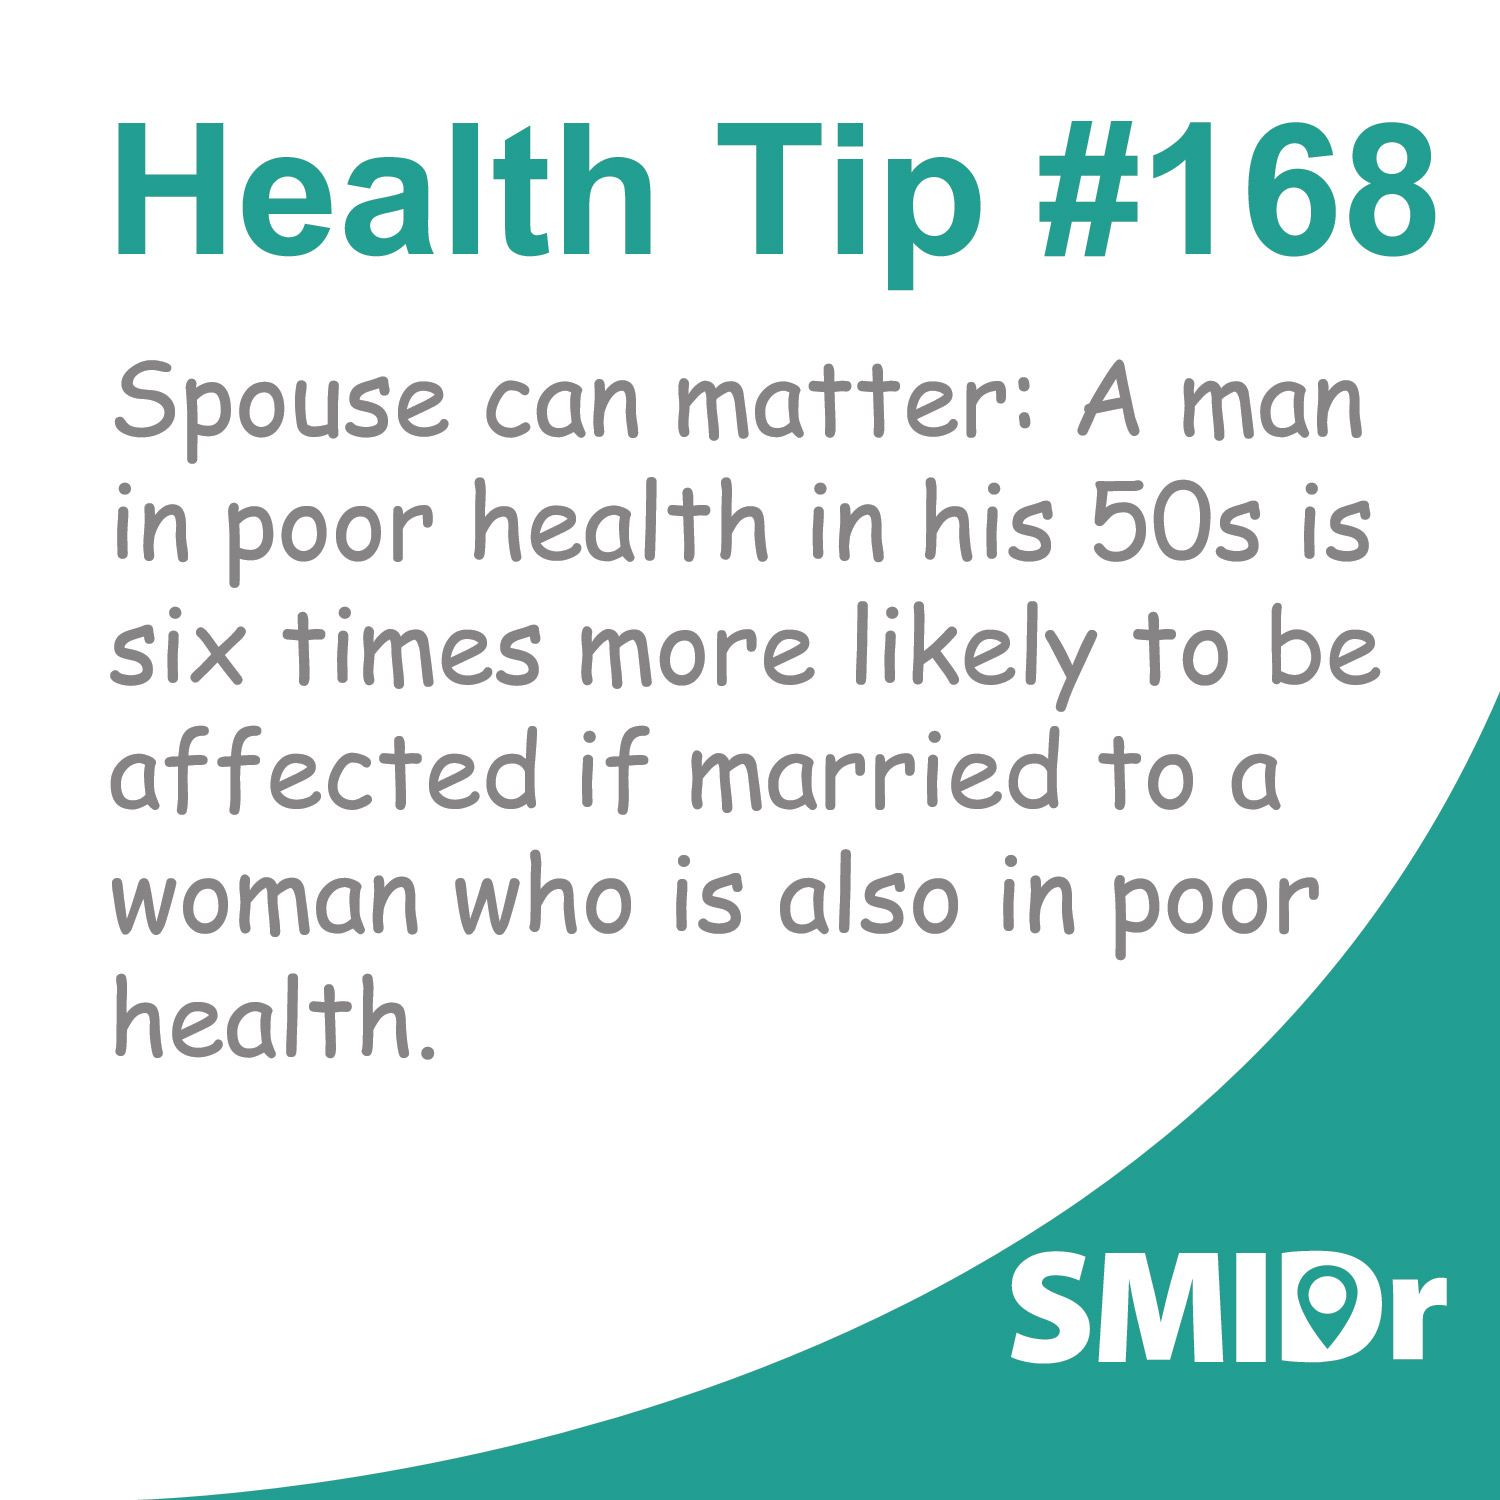 Spouse can matter: A man in poor health in his 50s is six times more likely to be affected if married to a woman who is also in poor health. #HealthTips